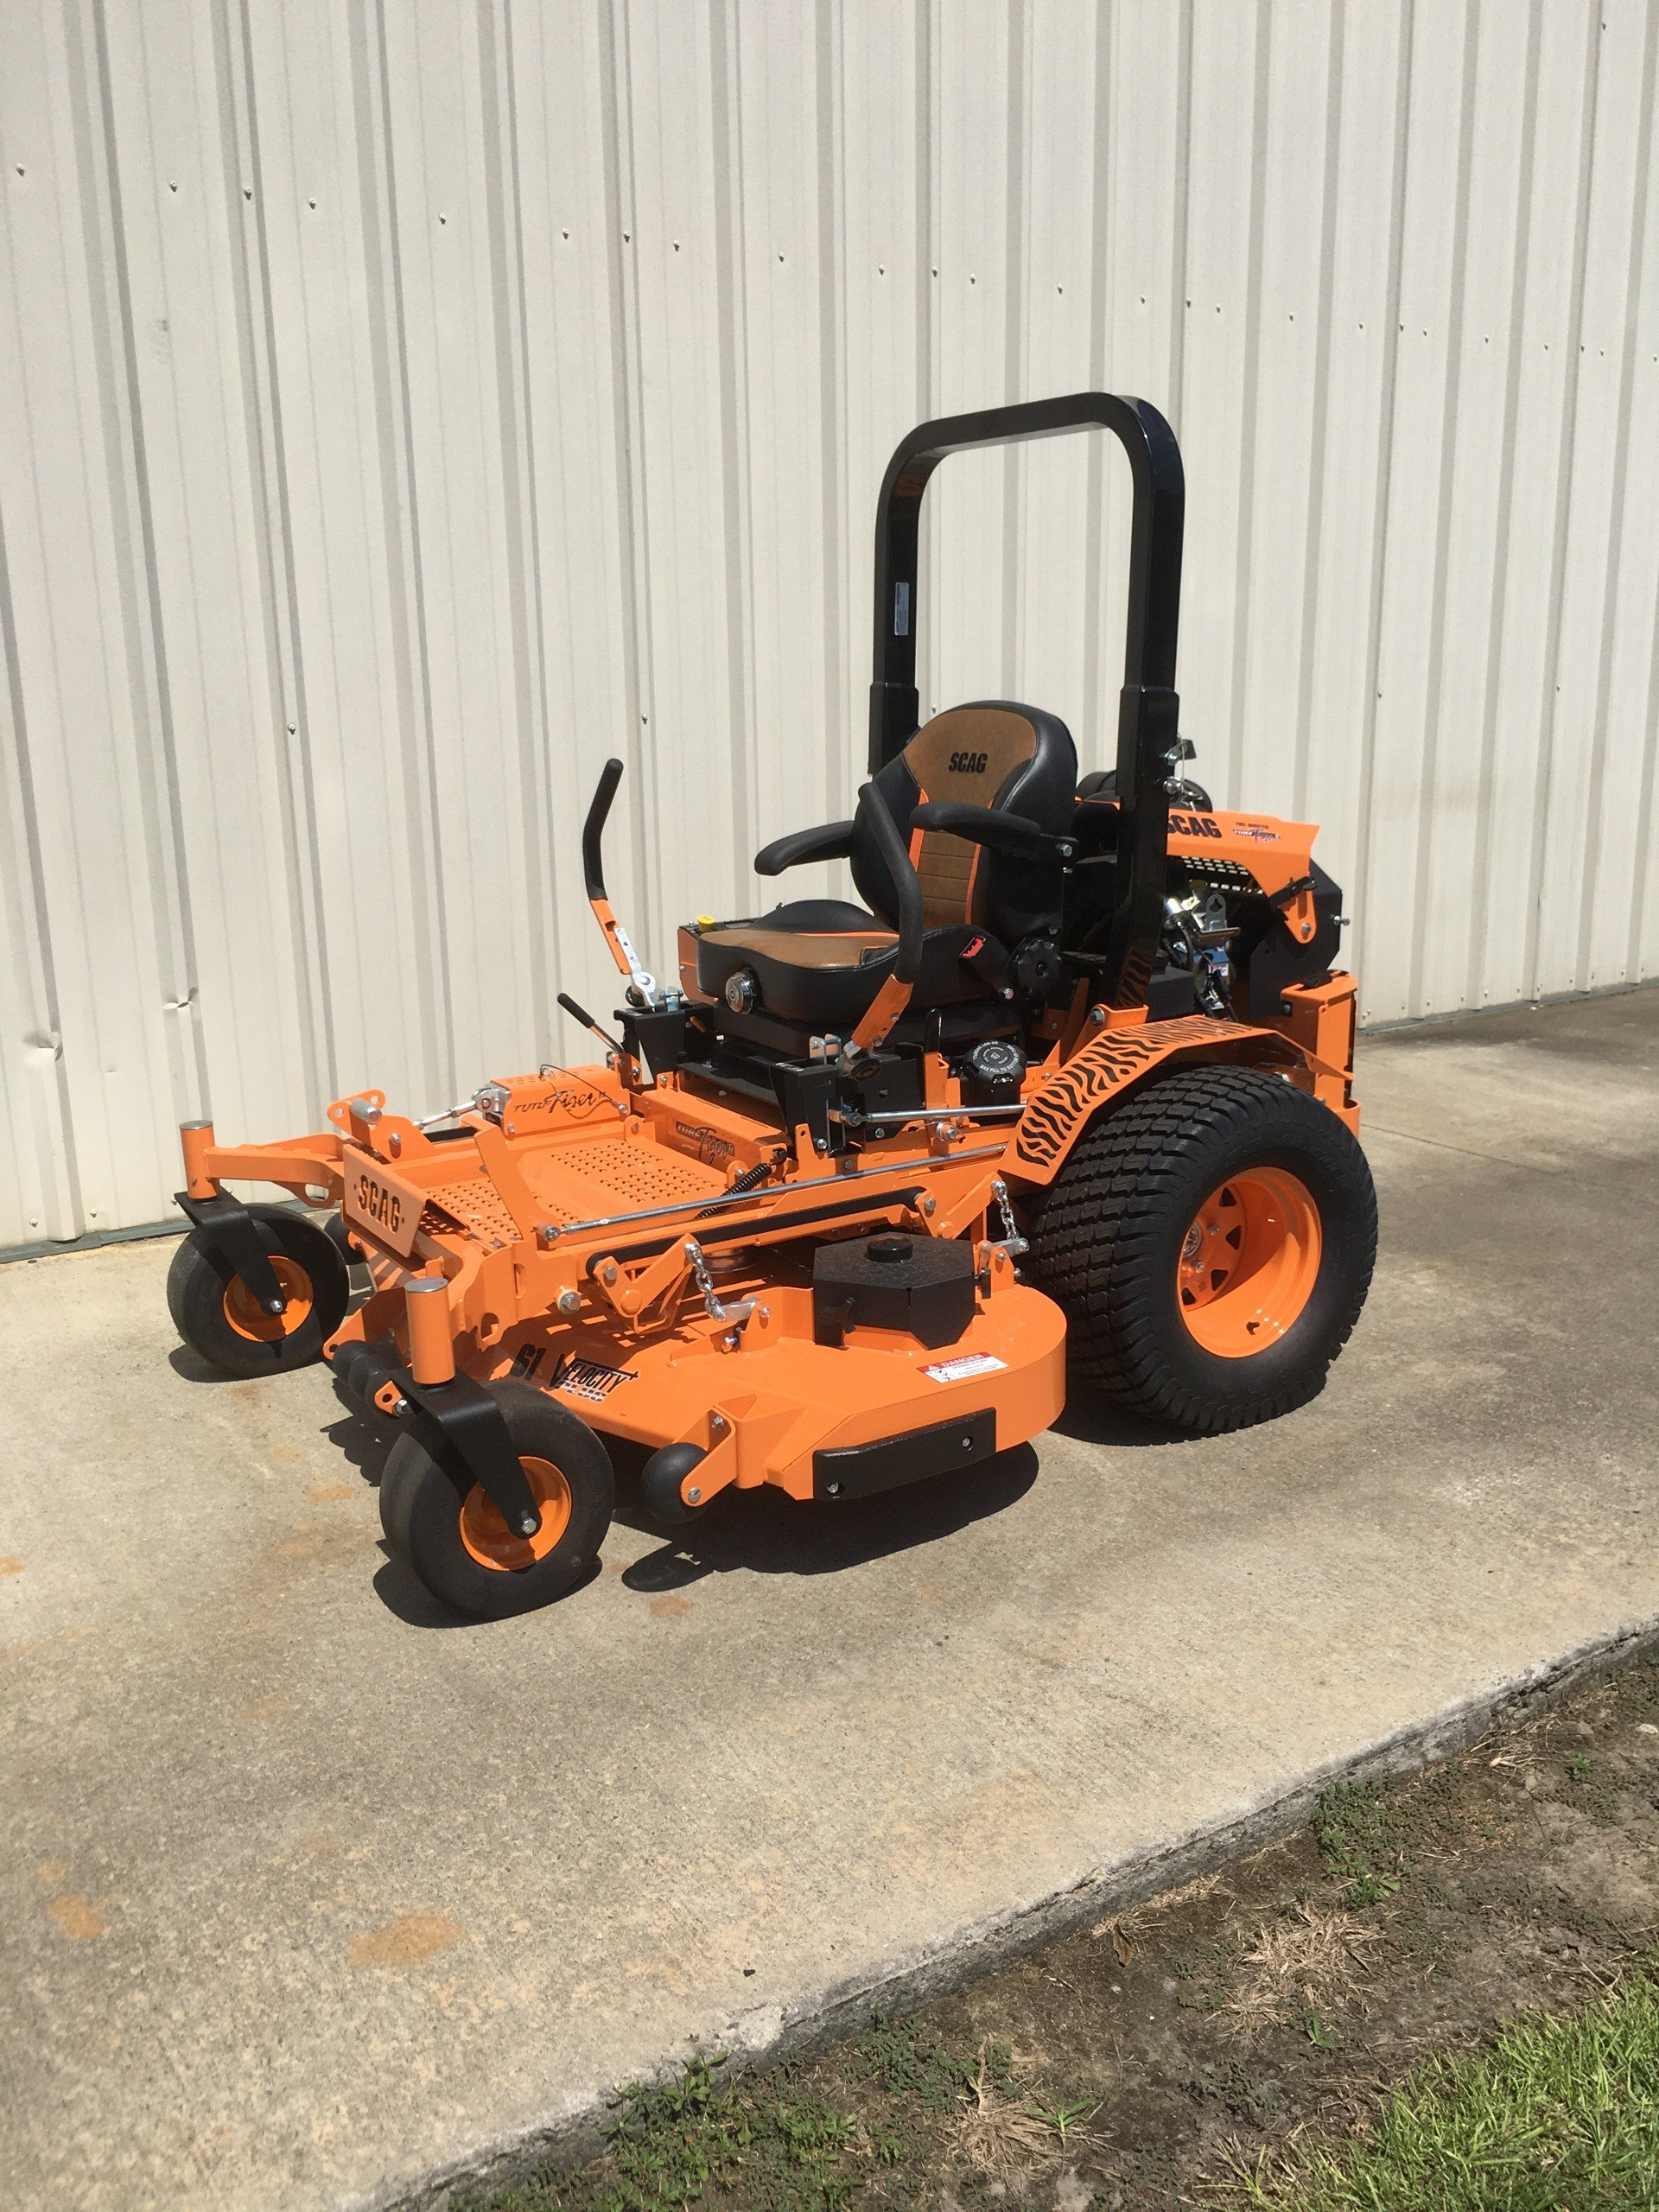 2020 SCAG Power Equipment Turf Tiger II 61 in. Briggs Vanguard EFI 37 hp in Tifton, Georgia - Photo 1